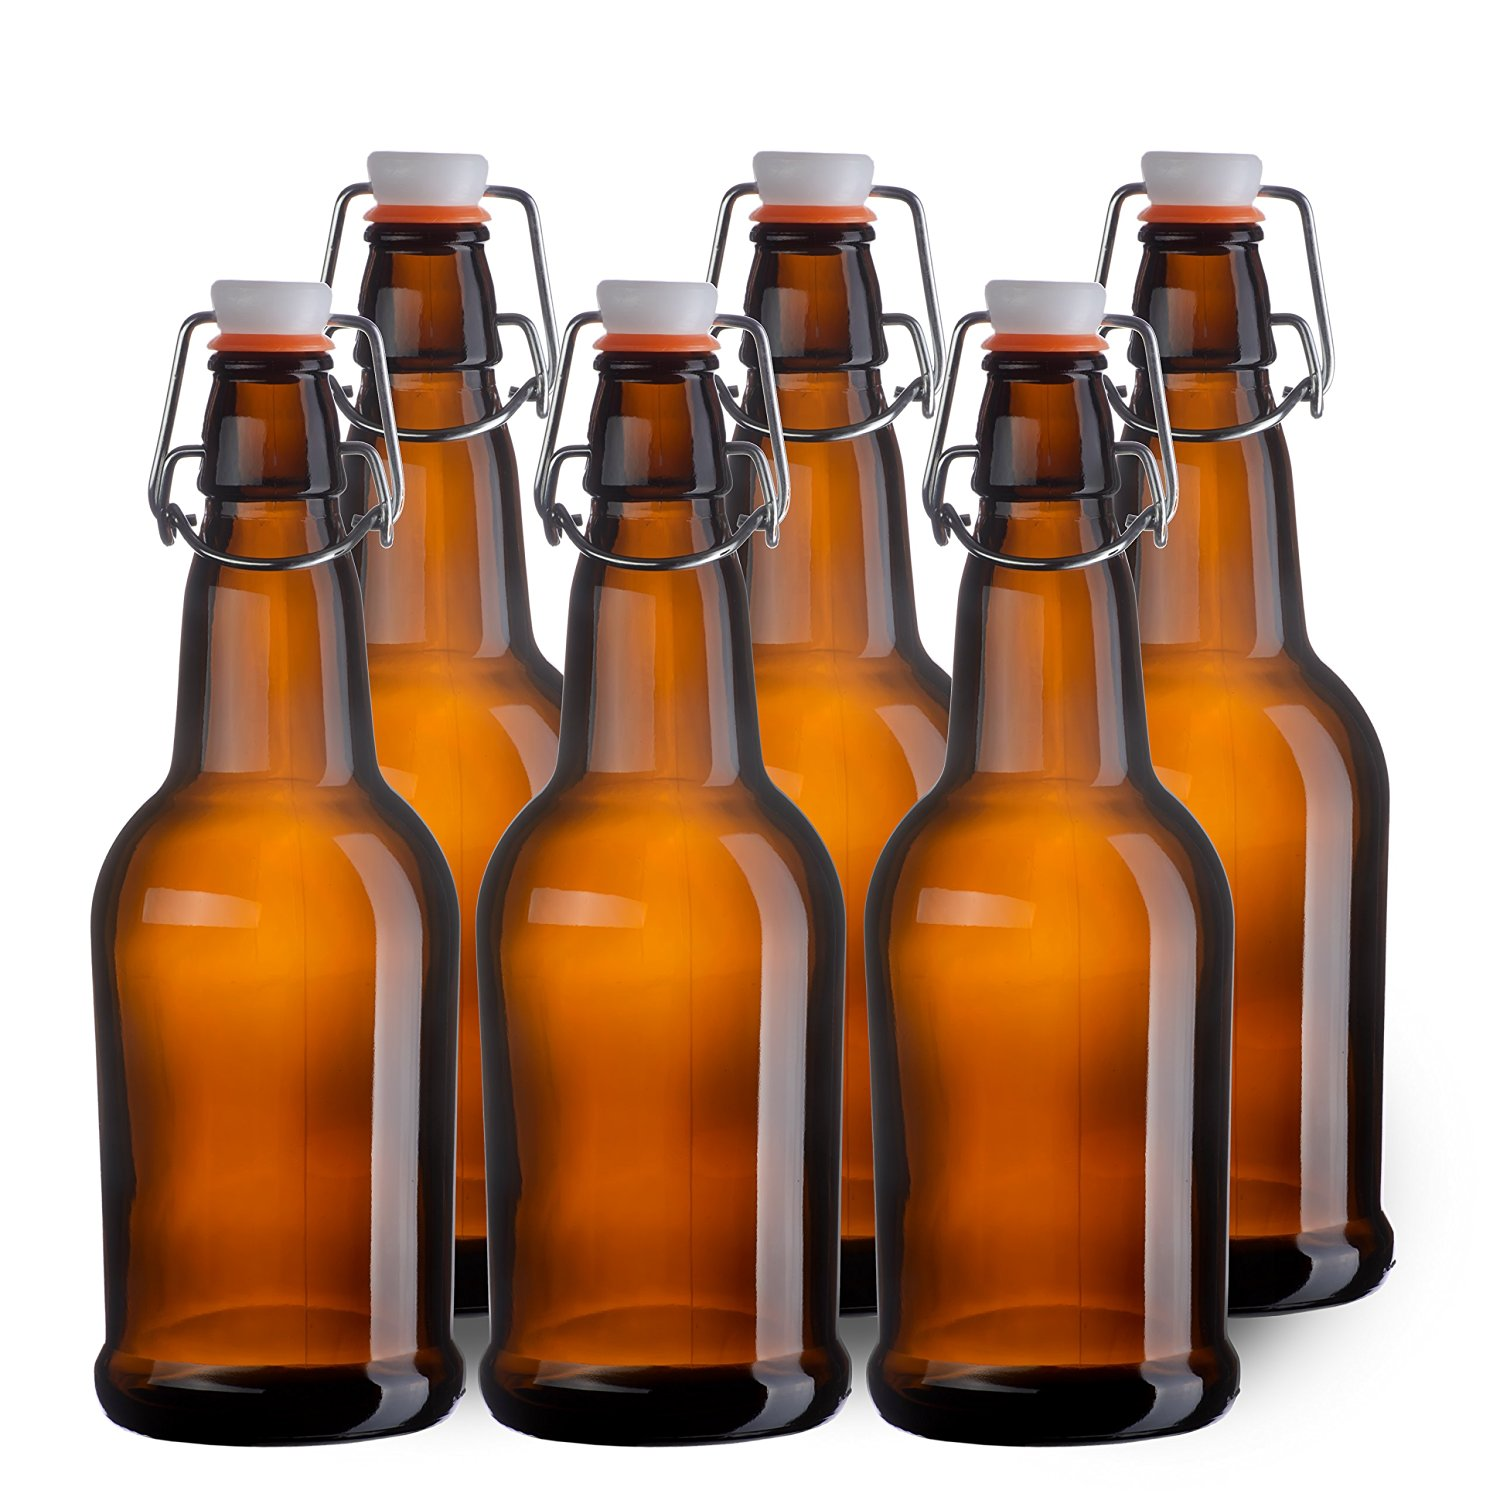 Home Brewing 16 oz Glass Bottles with Caps for Beer, Kombucha, Amber, Reusable (Set of 6-12